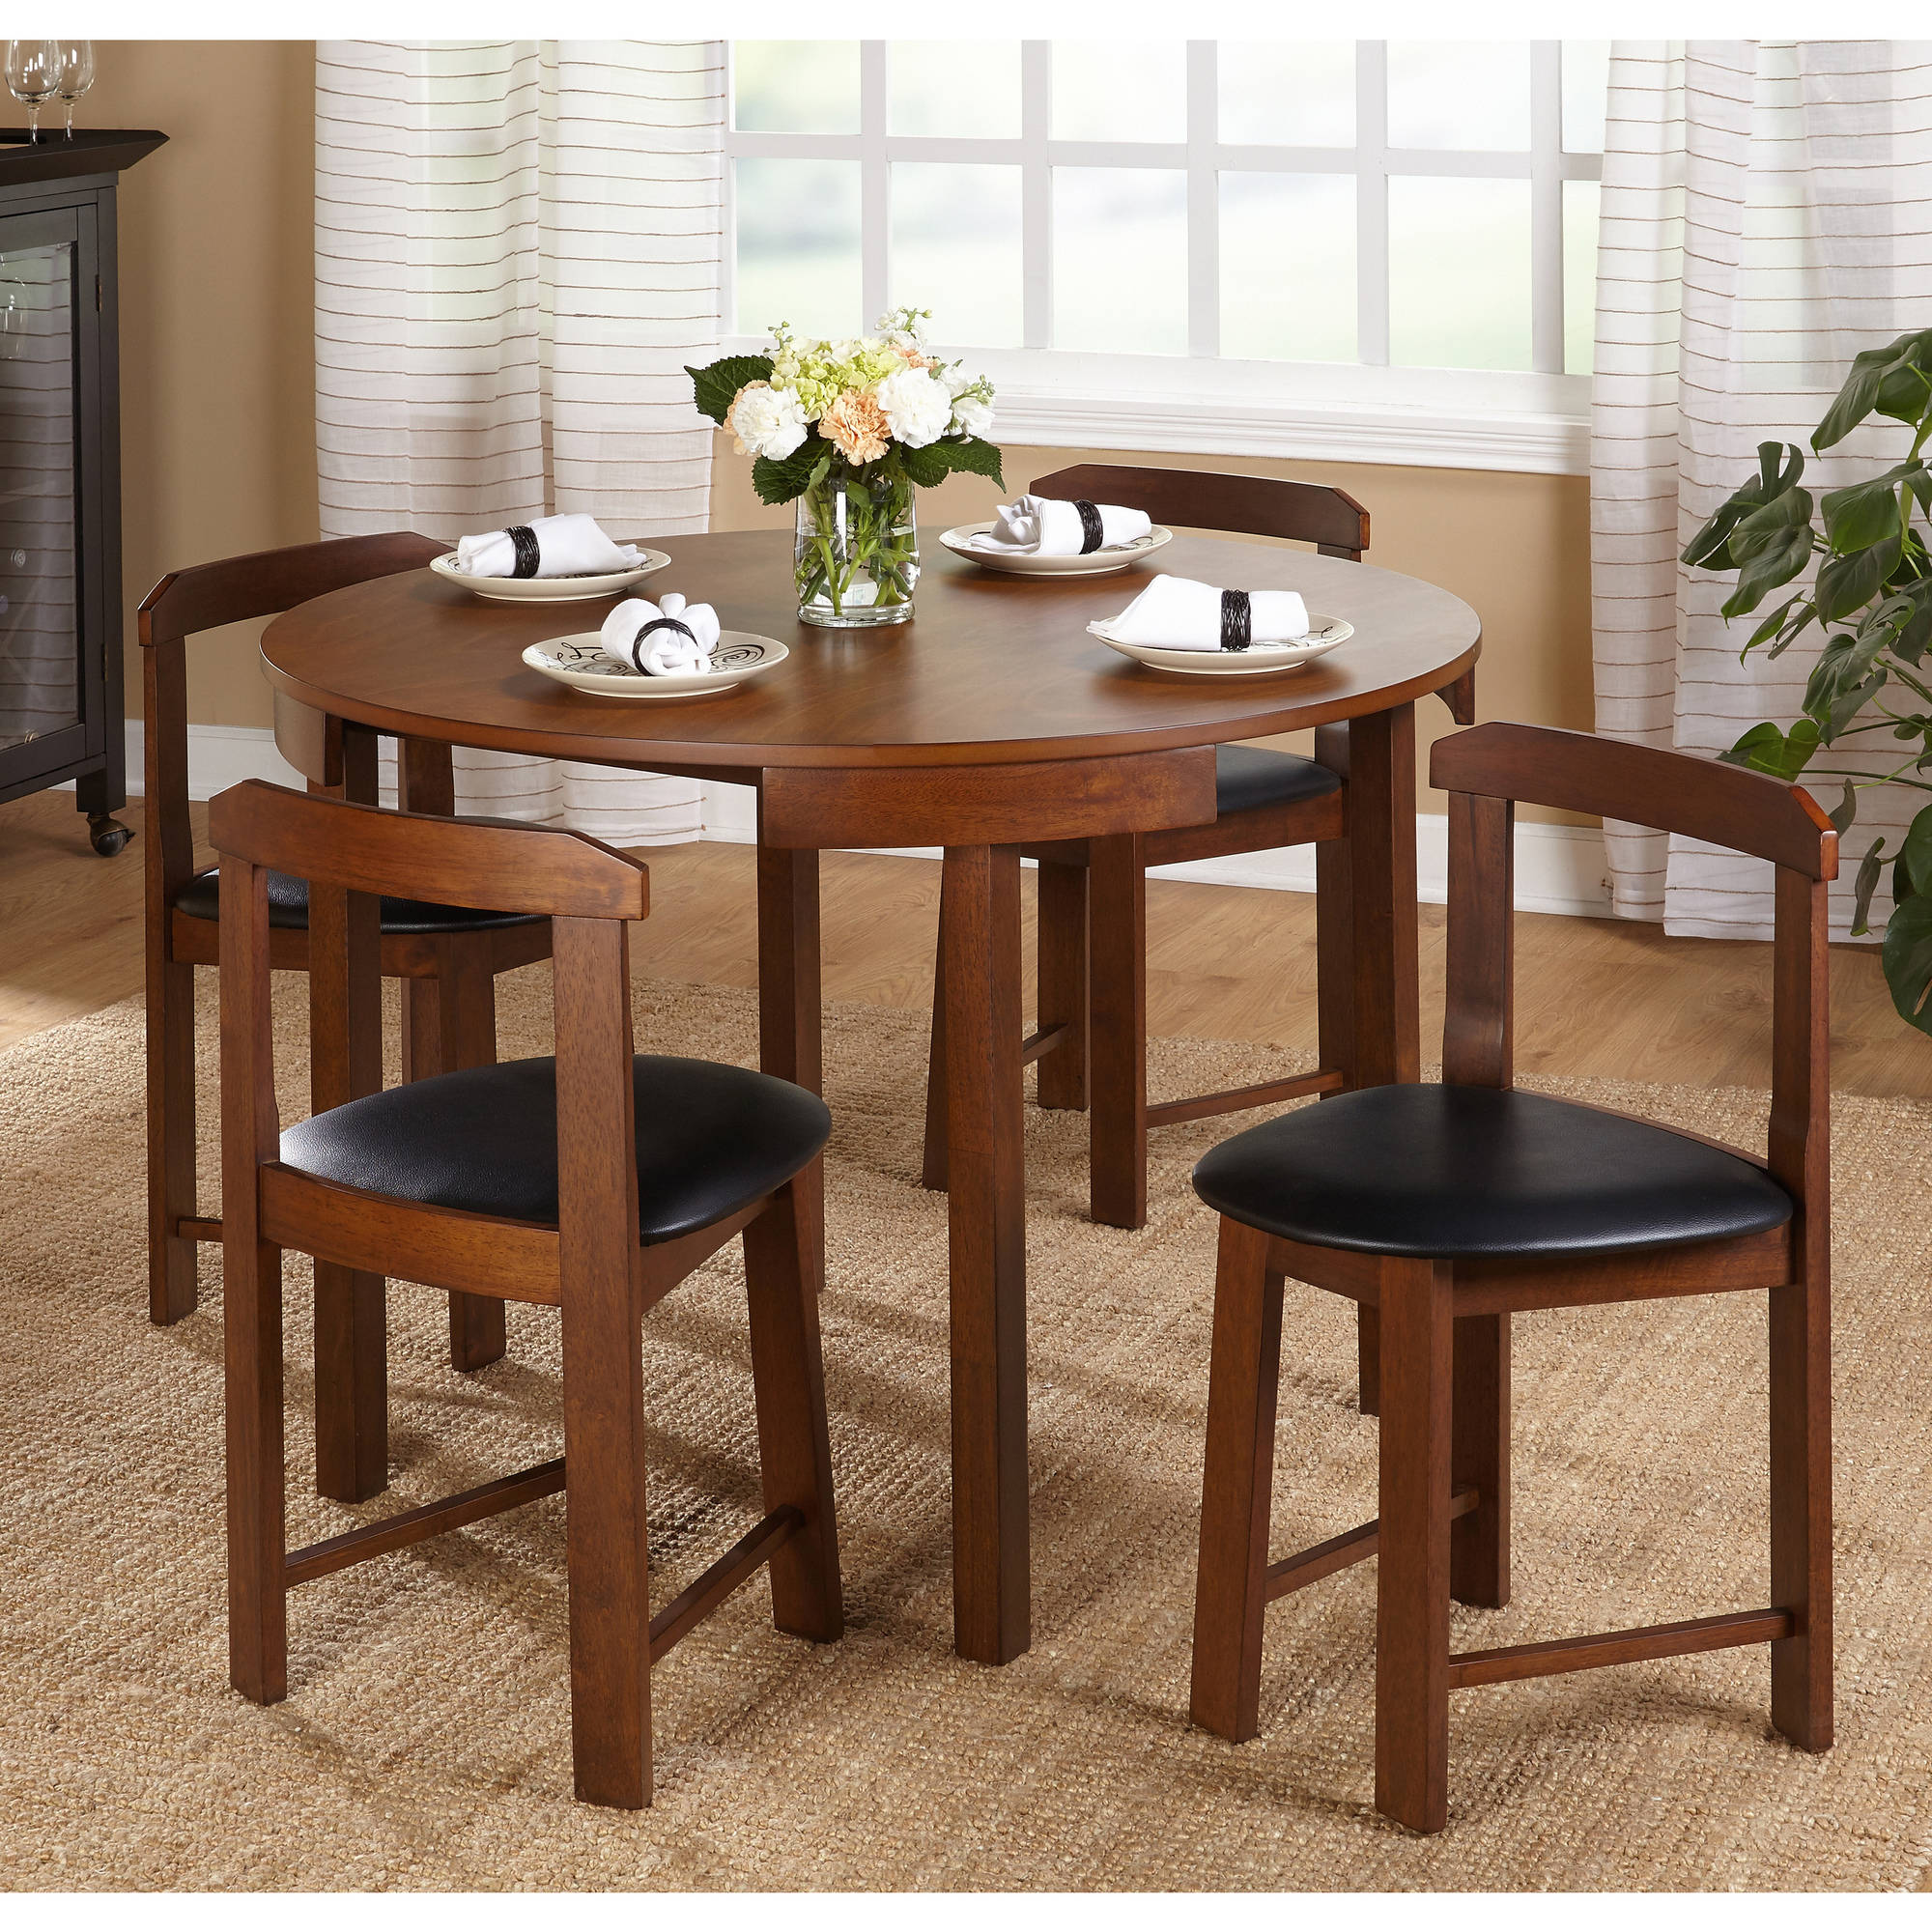 Gino 5-Piece Dining Set, Multiple Colors